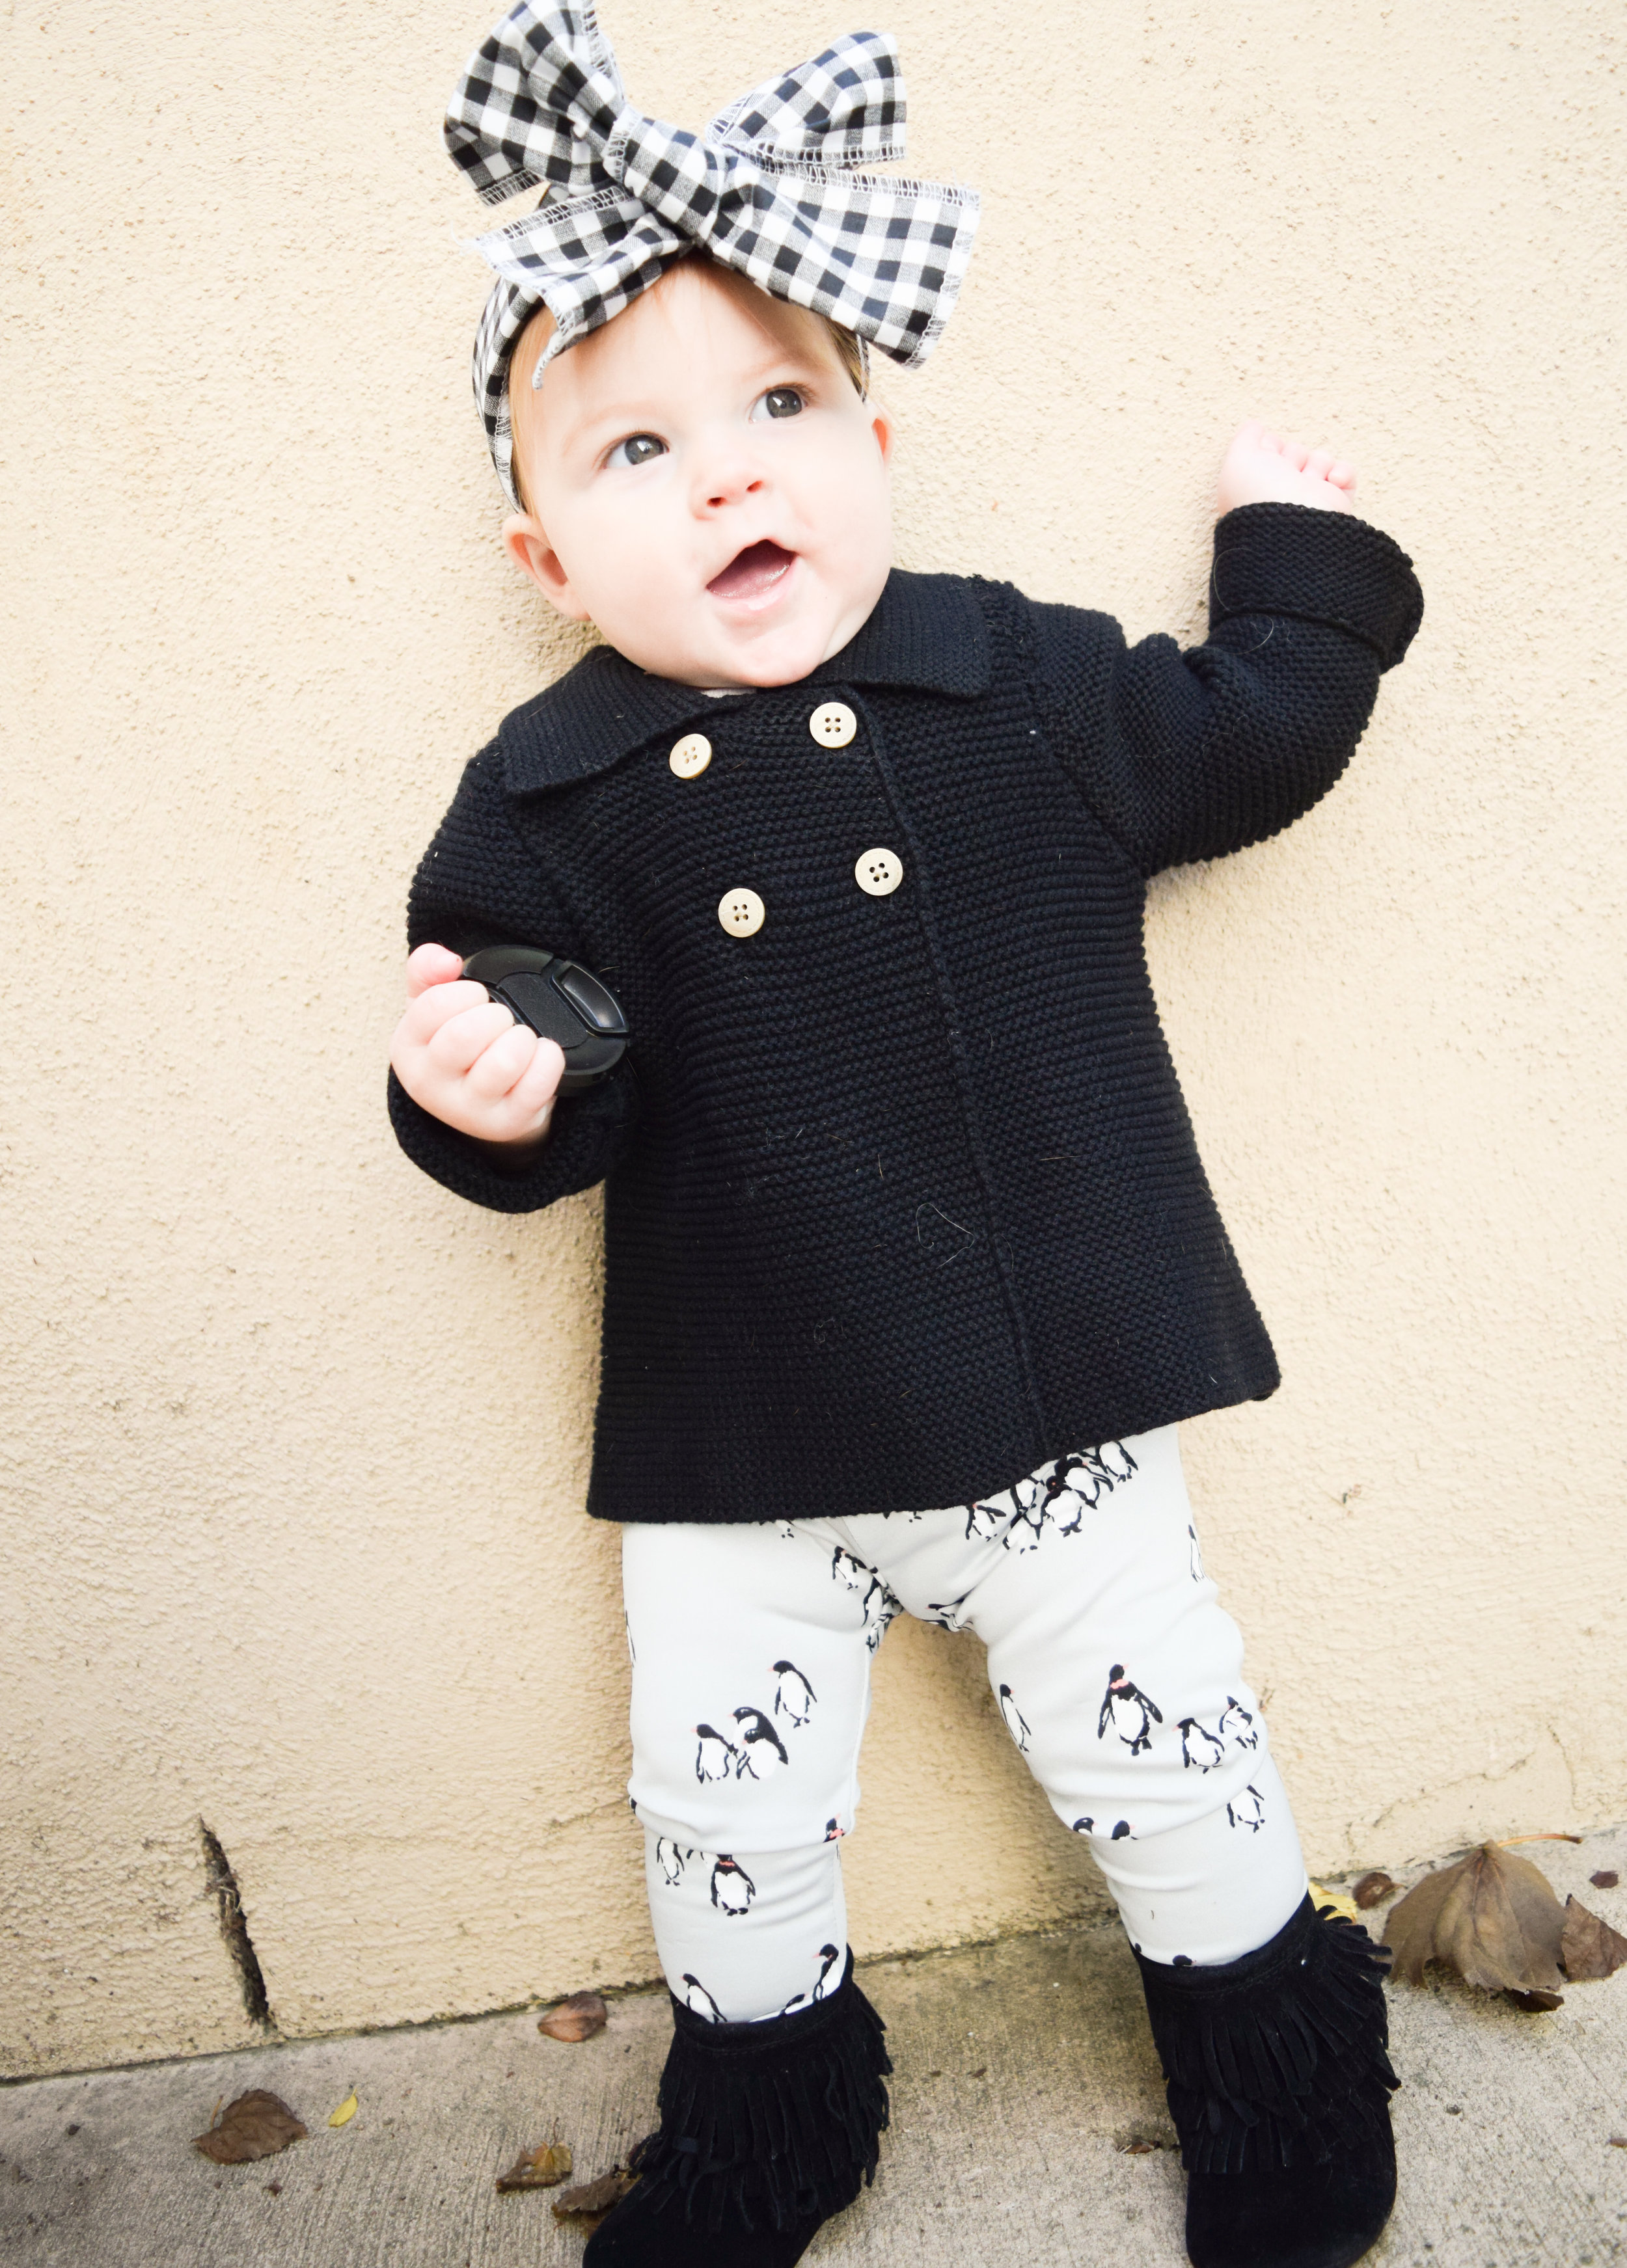 BABY FASHION | Kids Penguin Leggings - Cute Kids Winter Outfit